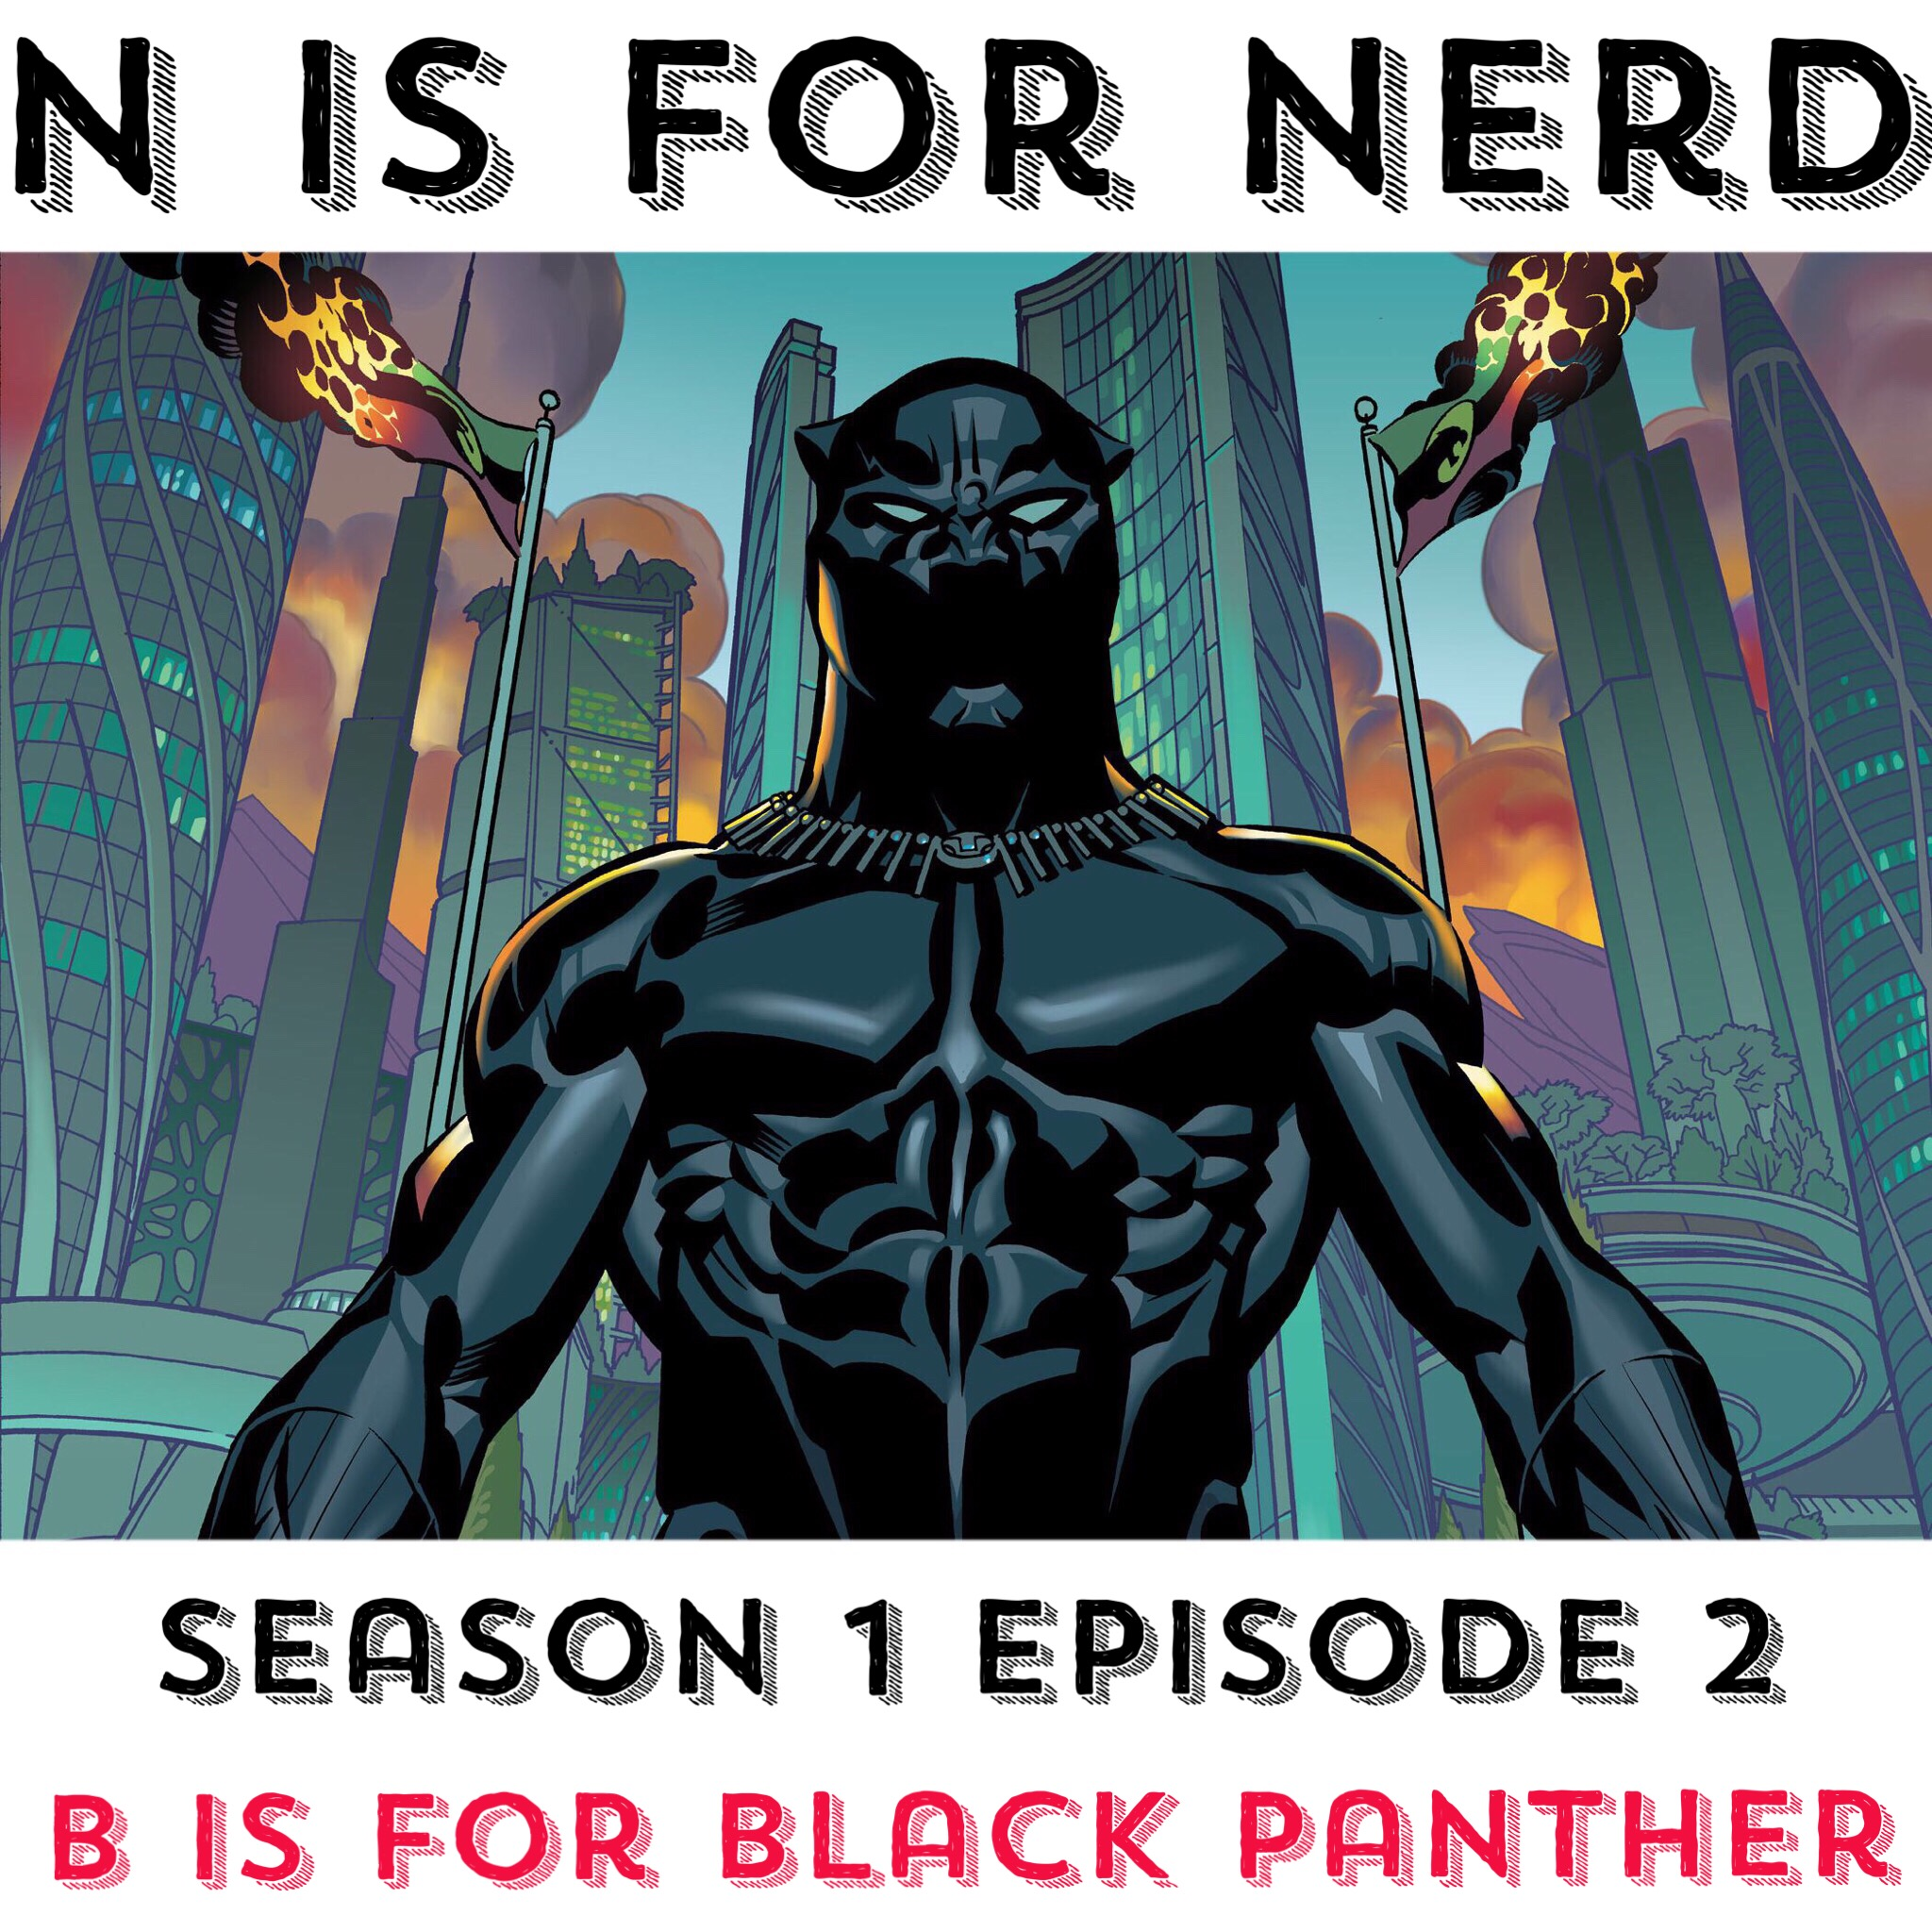 S01E02 - B is for Black Panther